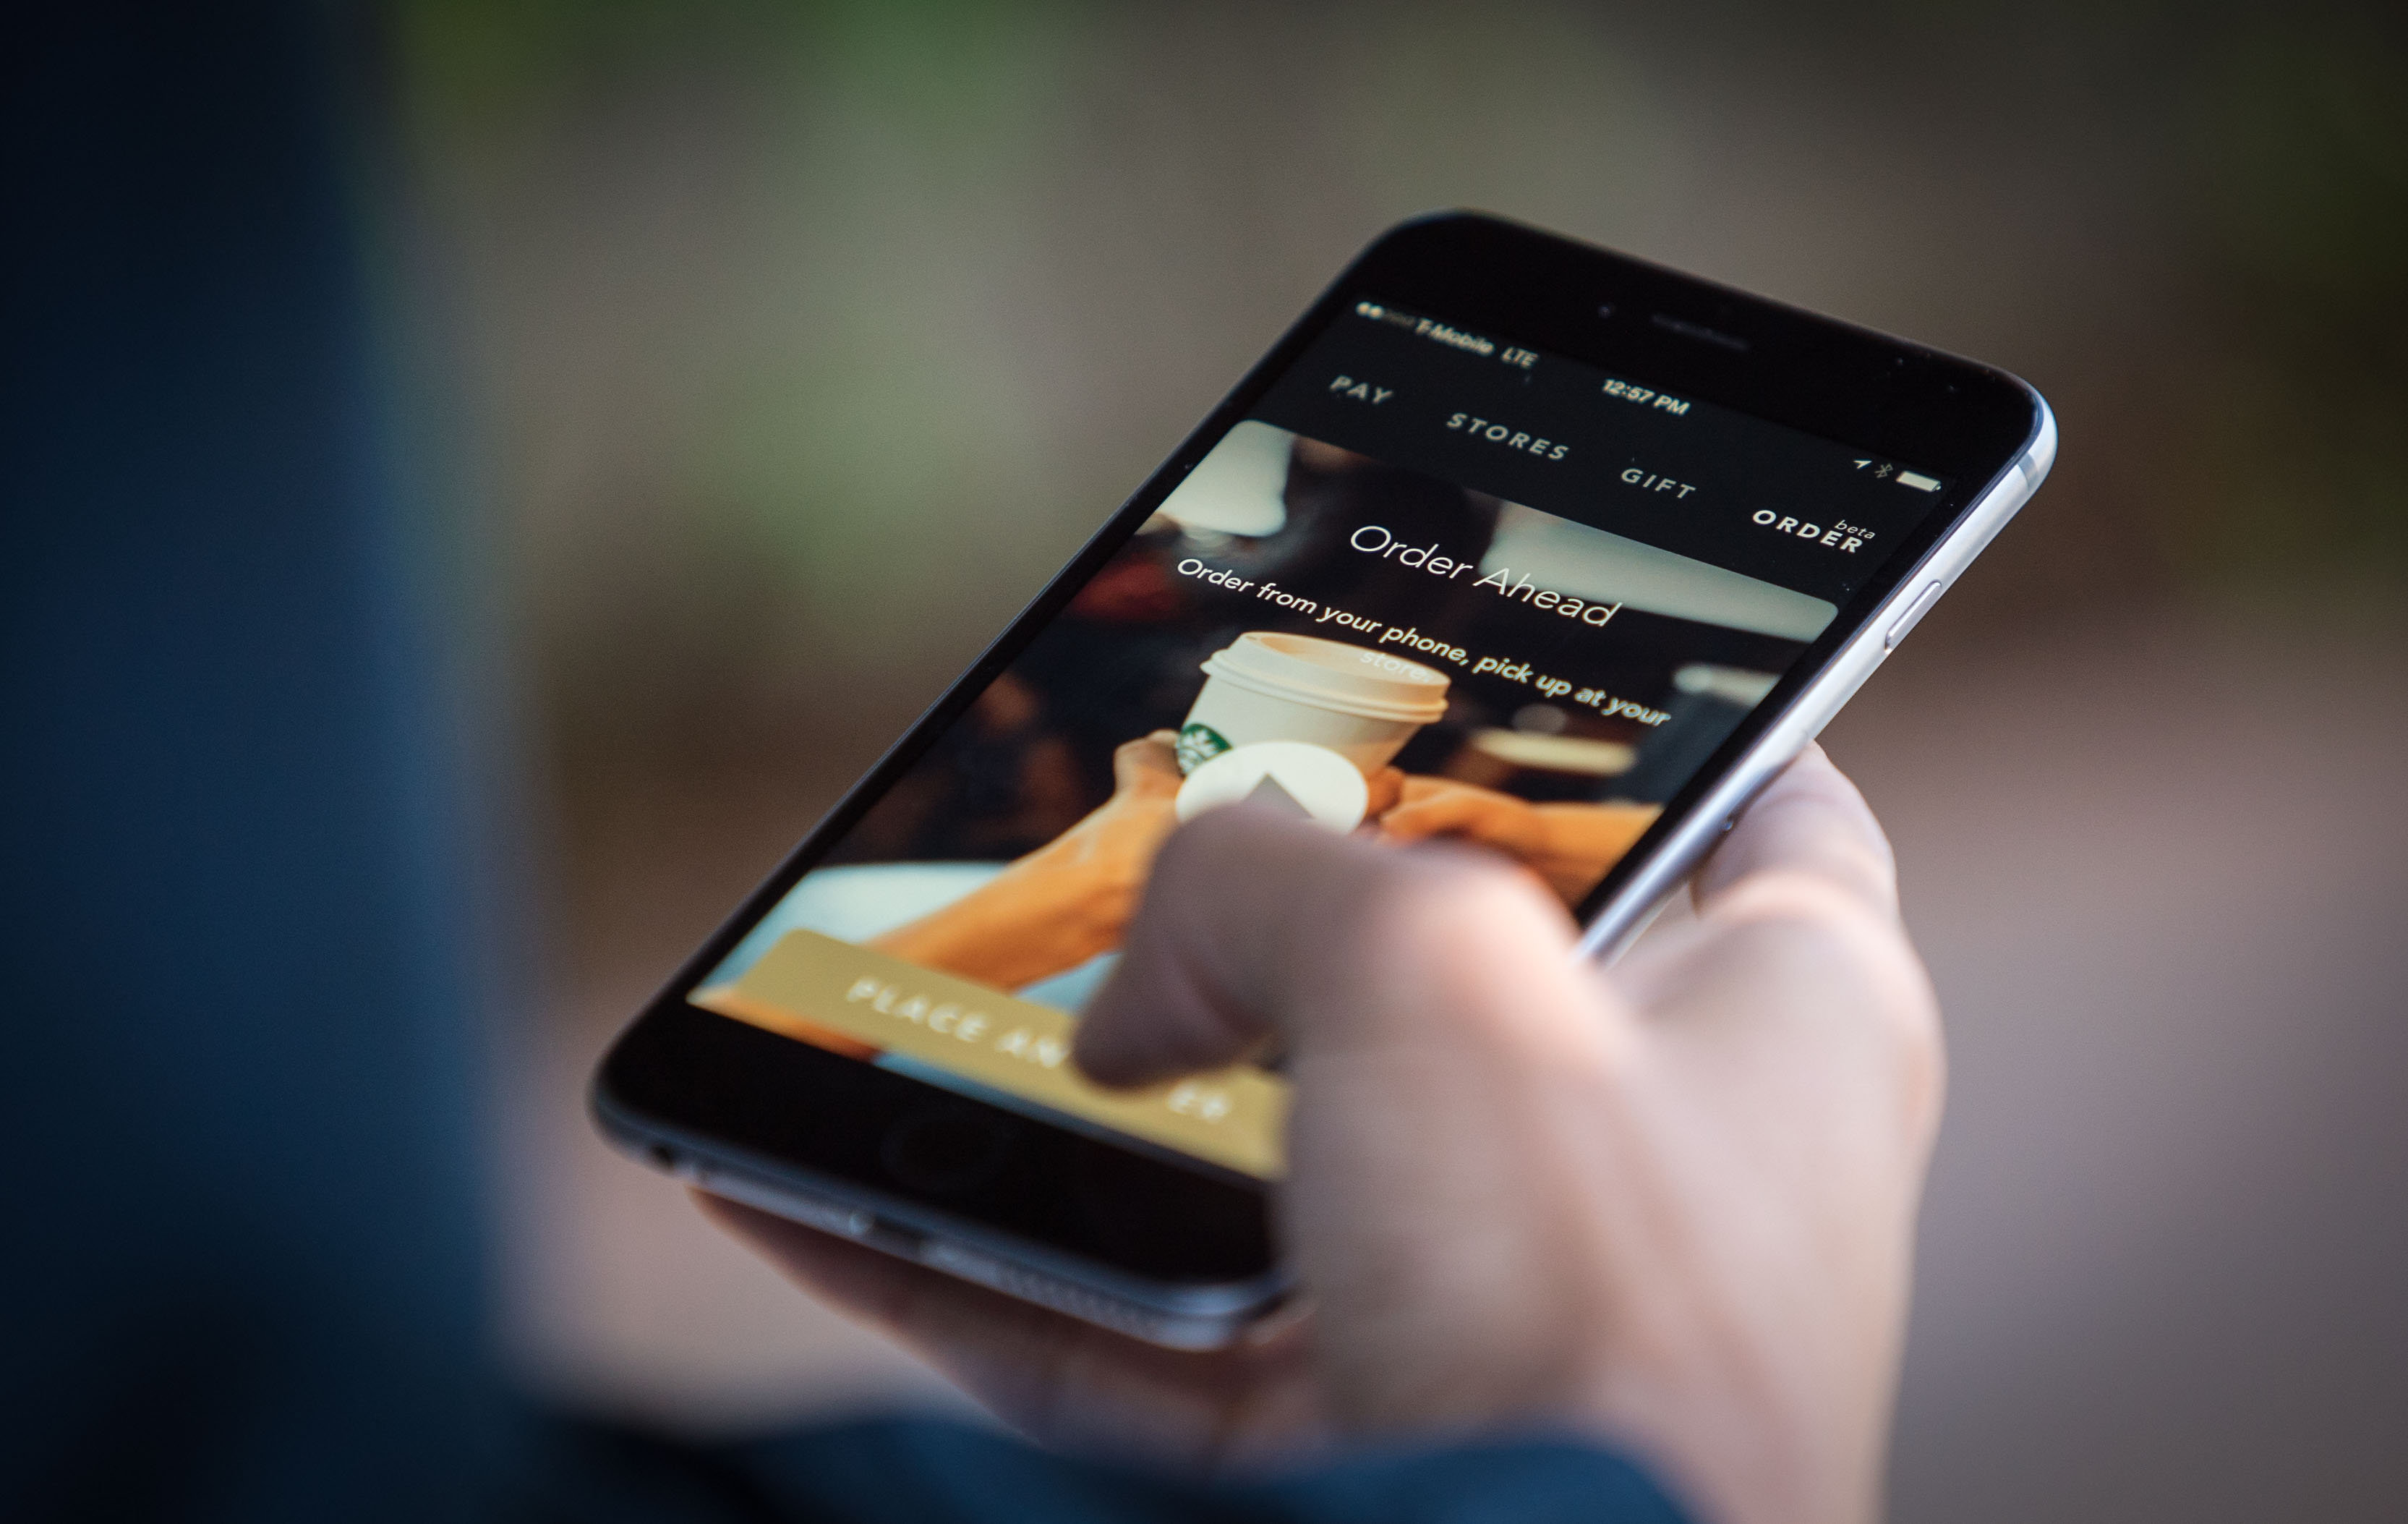 Starbucks Mobile Ordering and Payment App Available